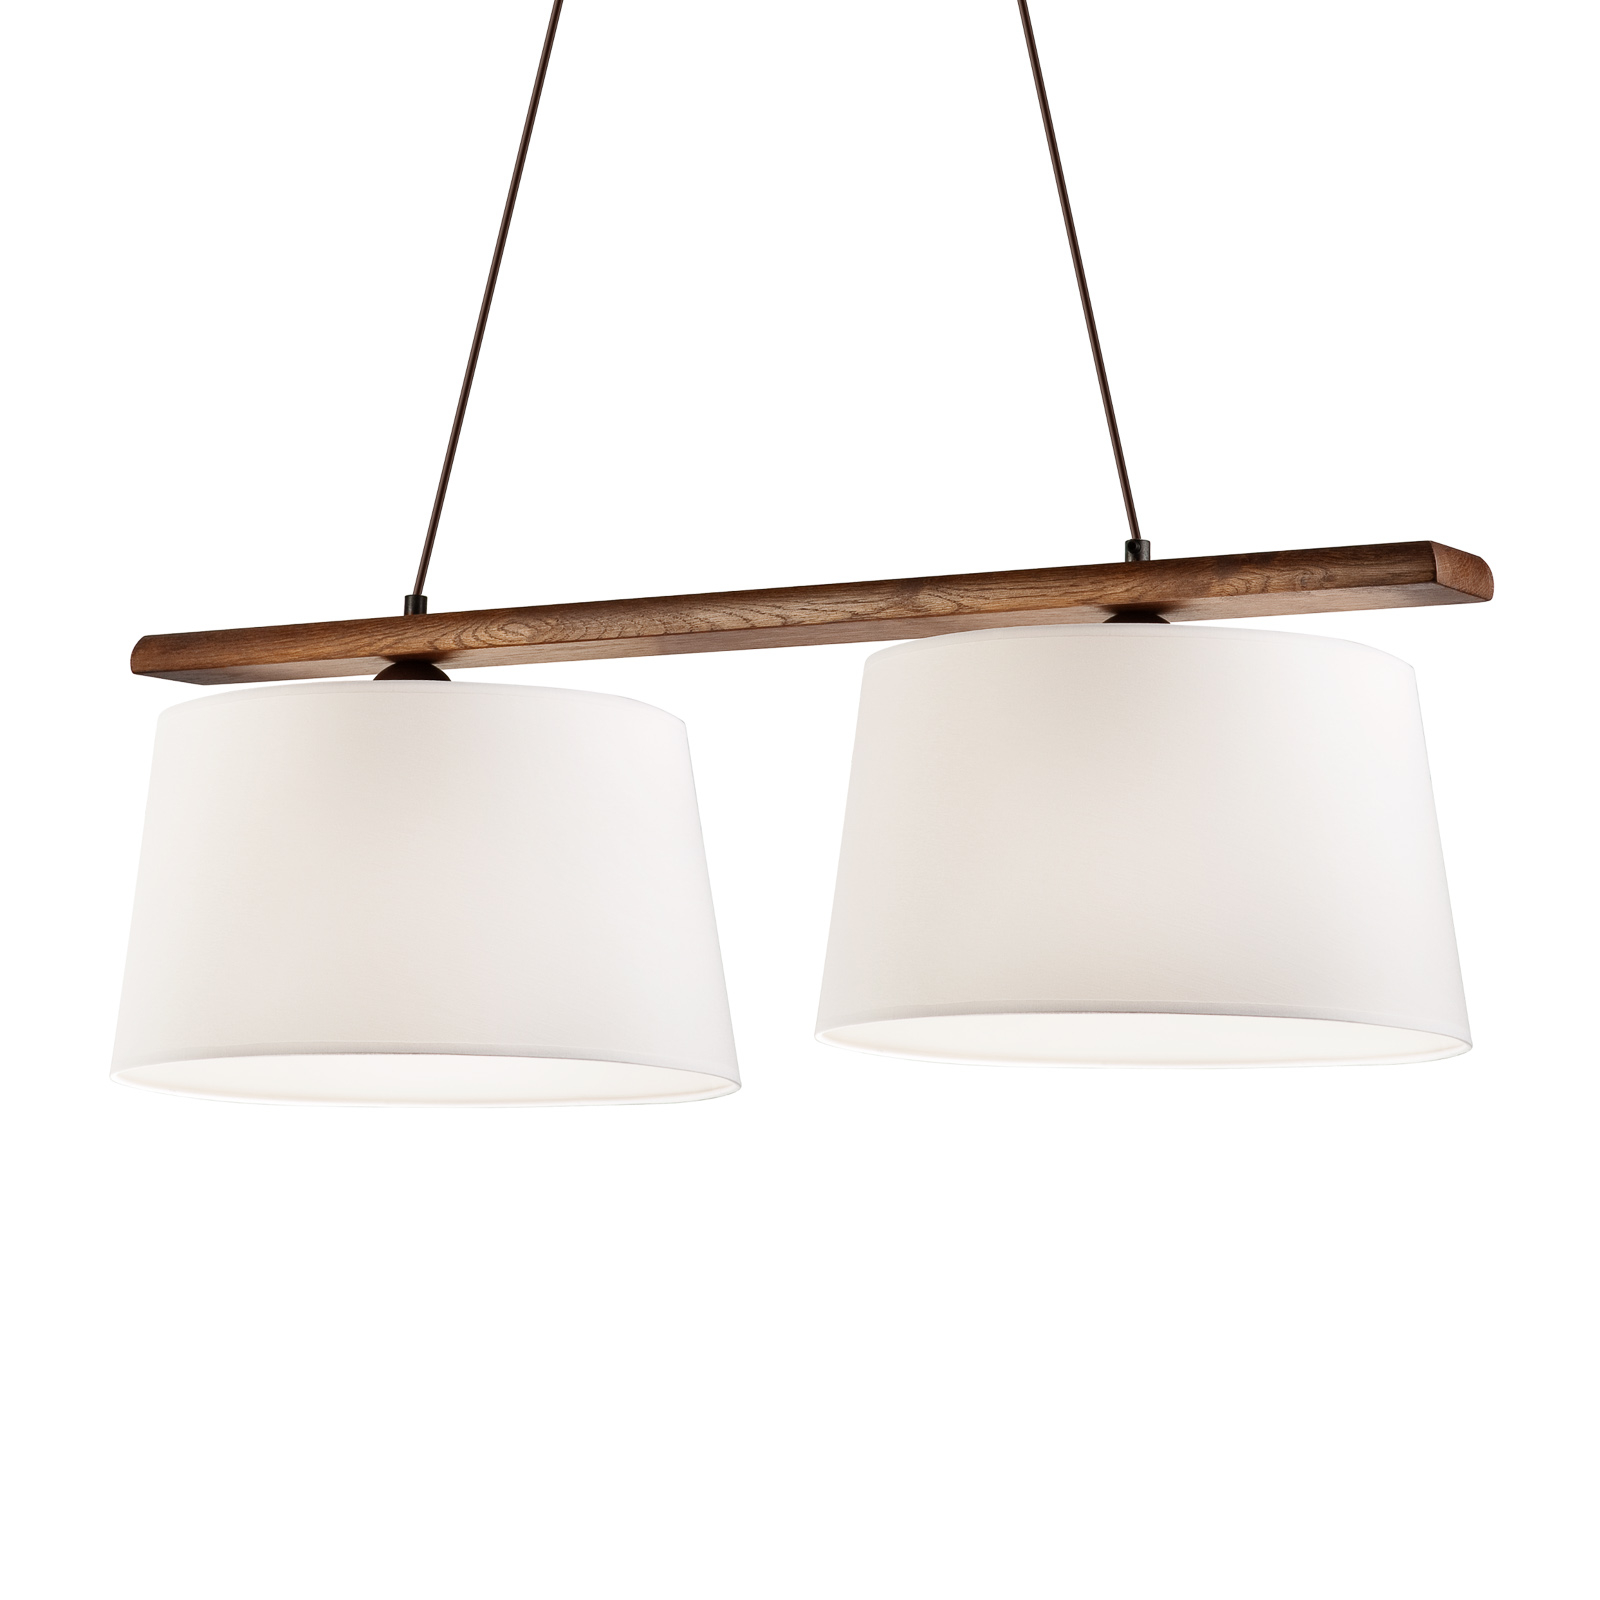 Hanglamp Sweden, 2-lamps, noten eiken